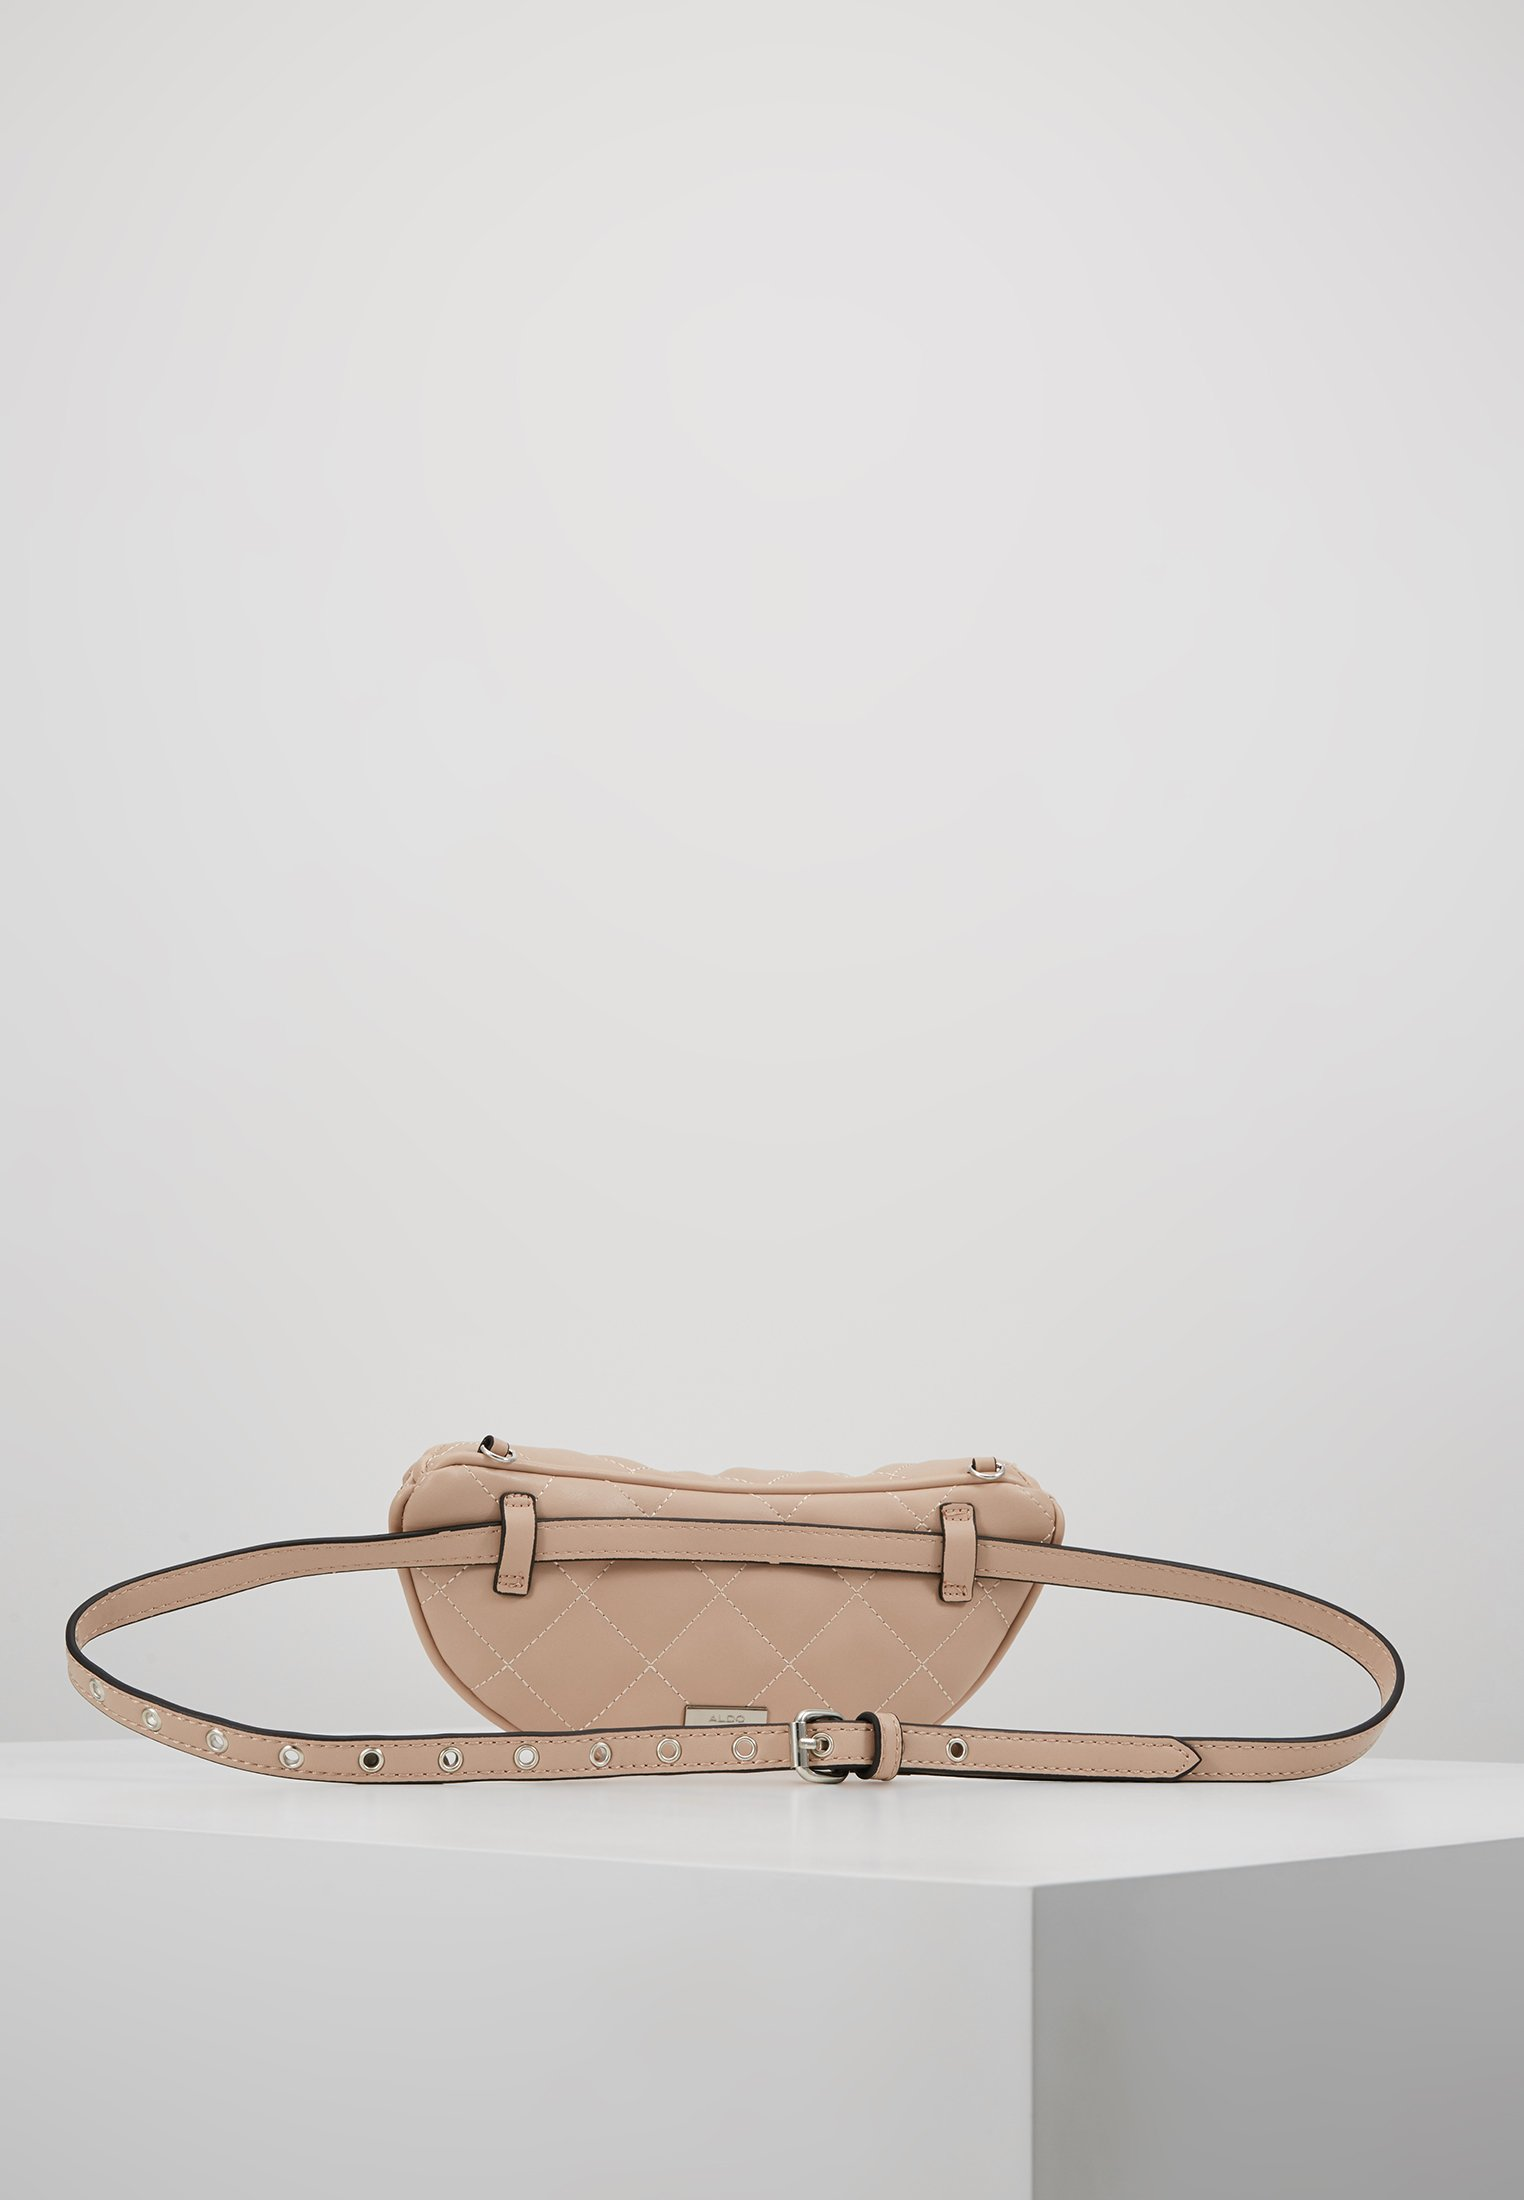 Aldo Pelivia - Sac Banane Light Pink